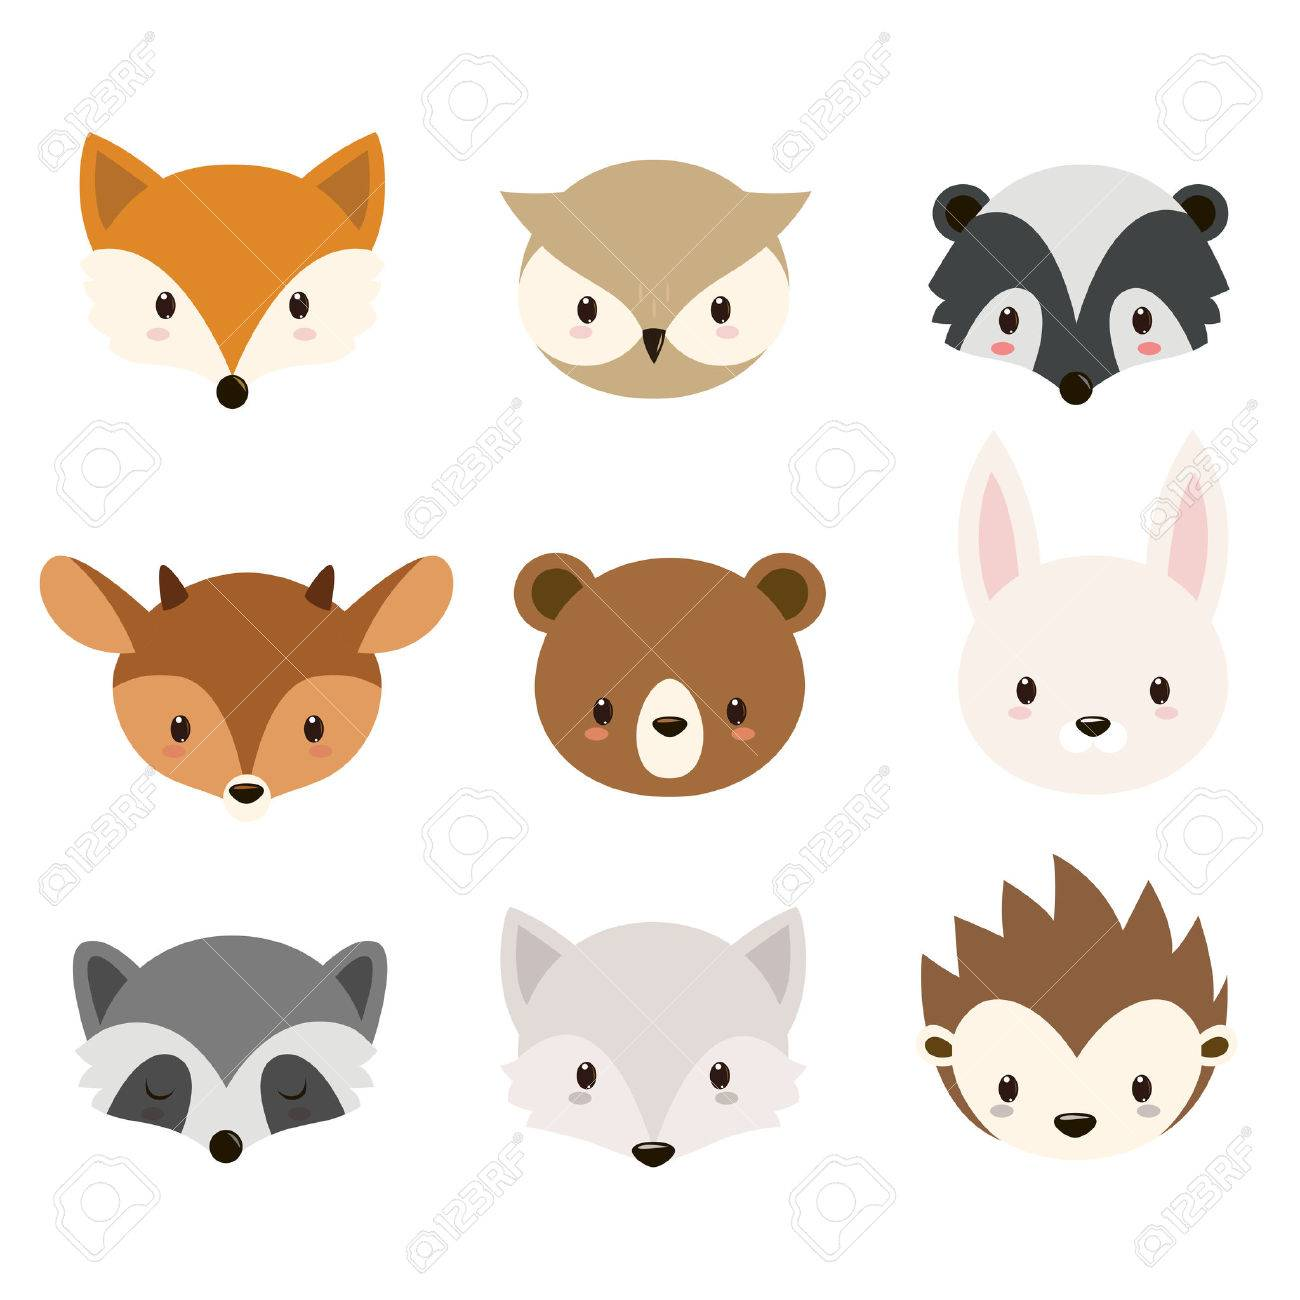 Cute woodland animals collection. Animals heads isolated on white background. Stock Vector - 50005805